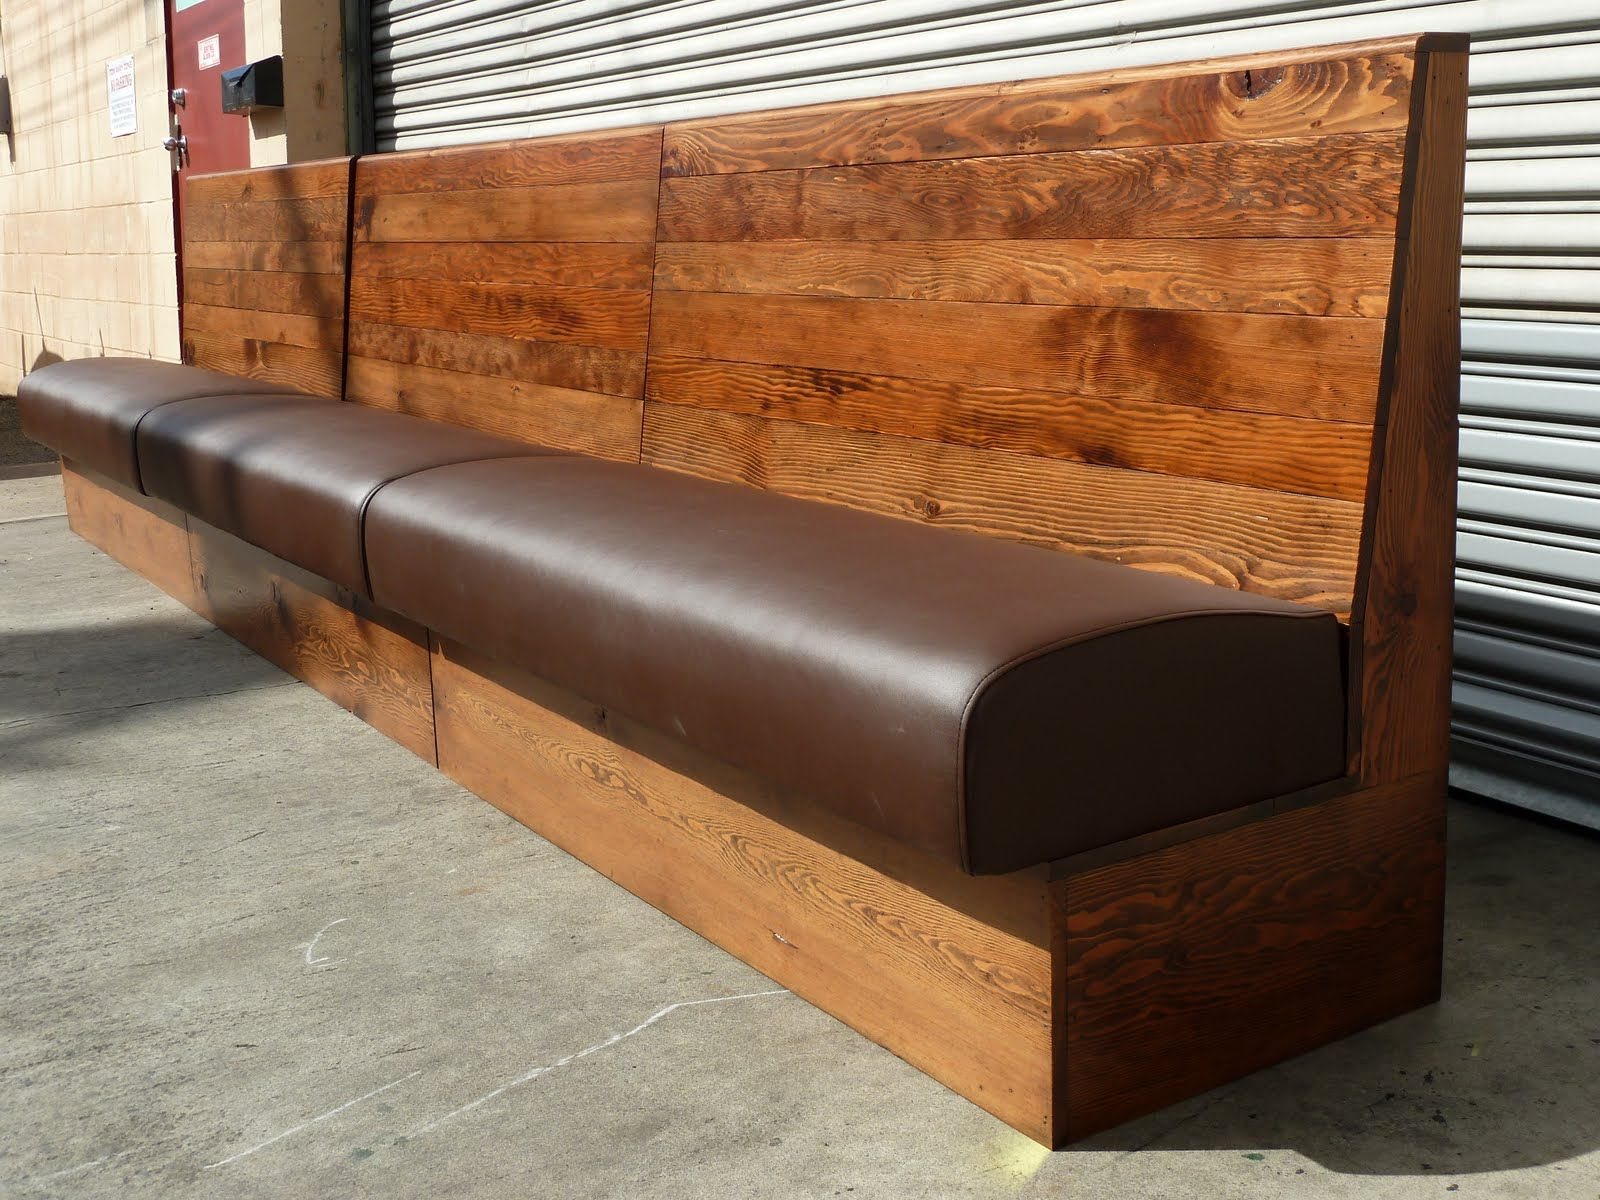 Cool banquette bench which suitable for dining room and Banquette bench